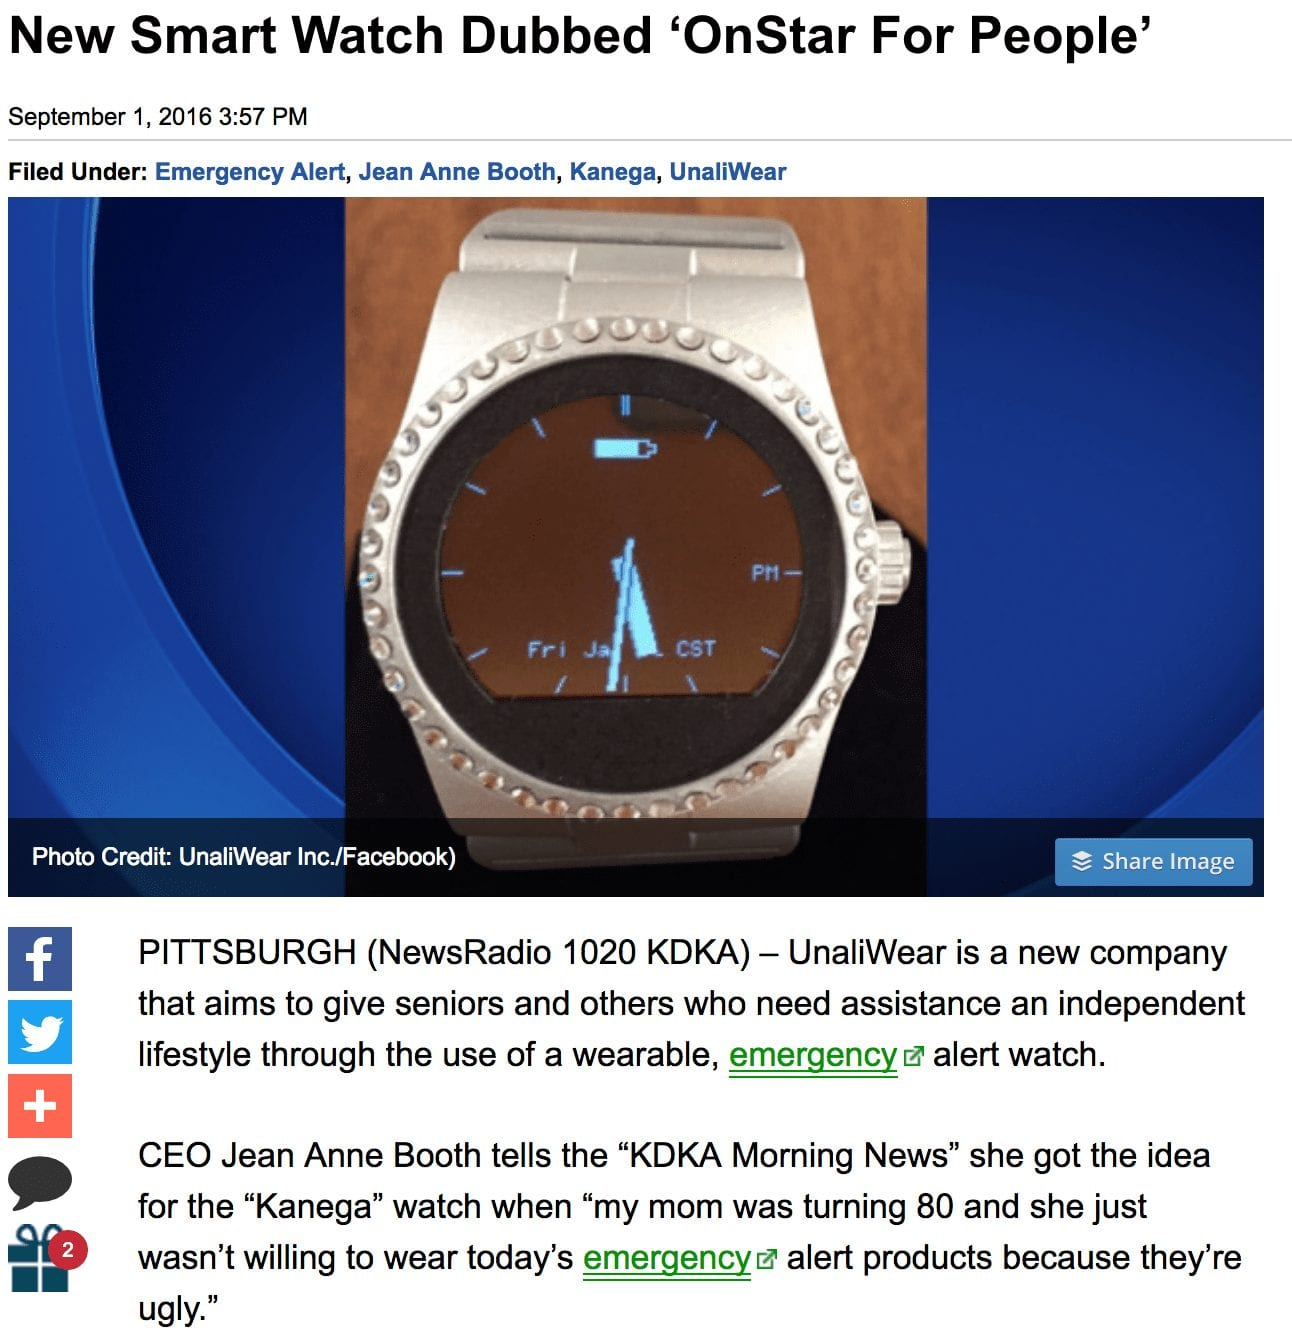 New Smart Watch Dubbed 'OnStar For People'